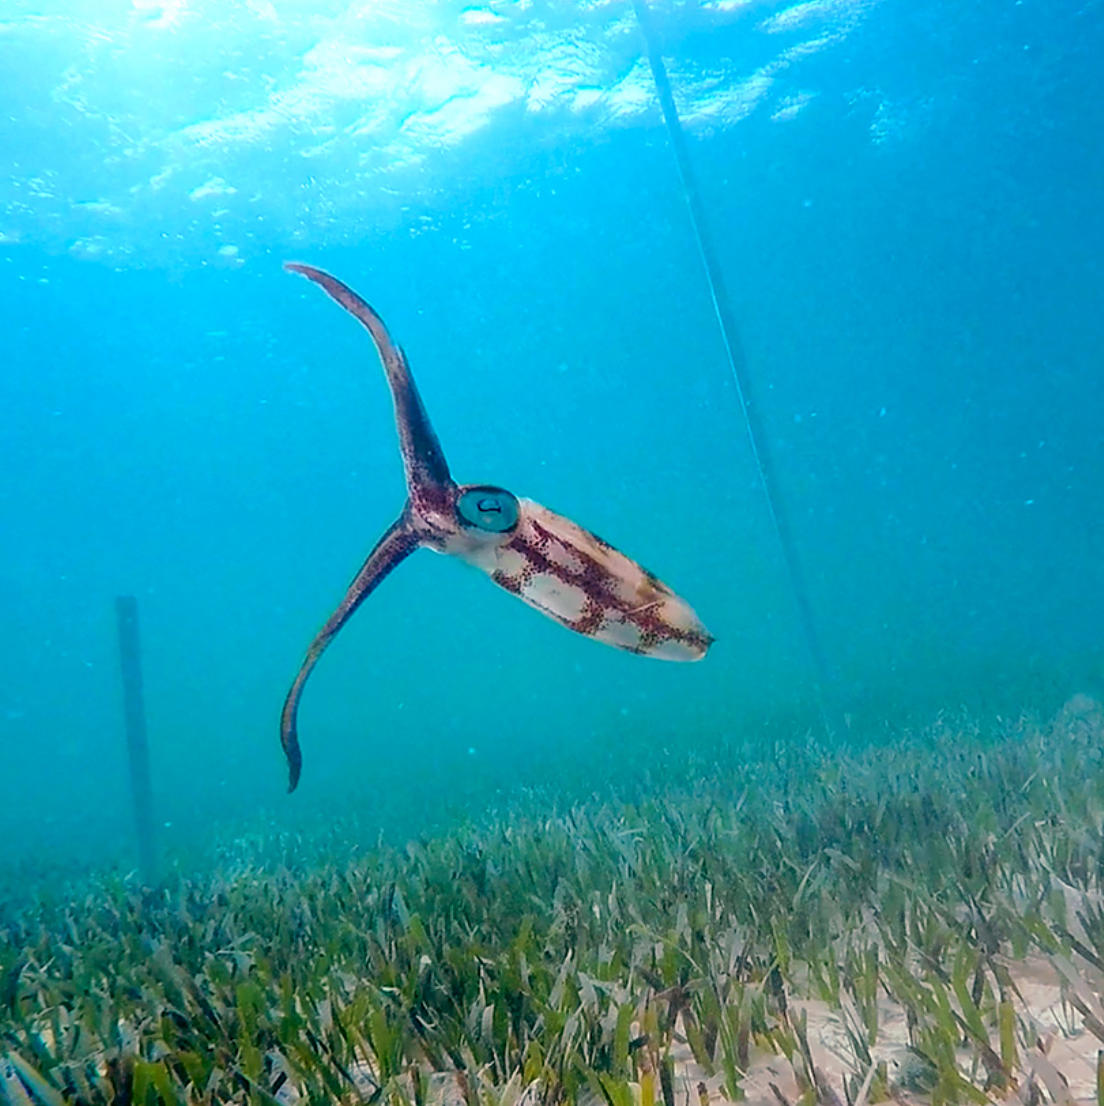 The Tropicalisation Of Western Atlantic Seagrass Beds